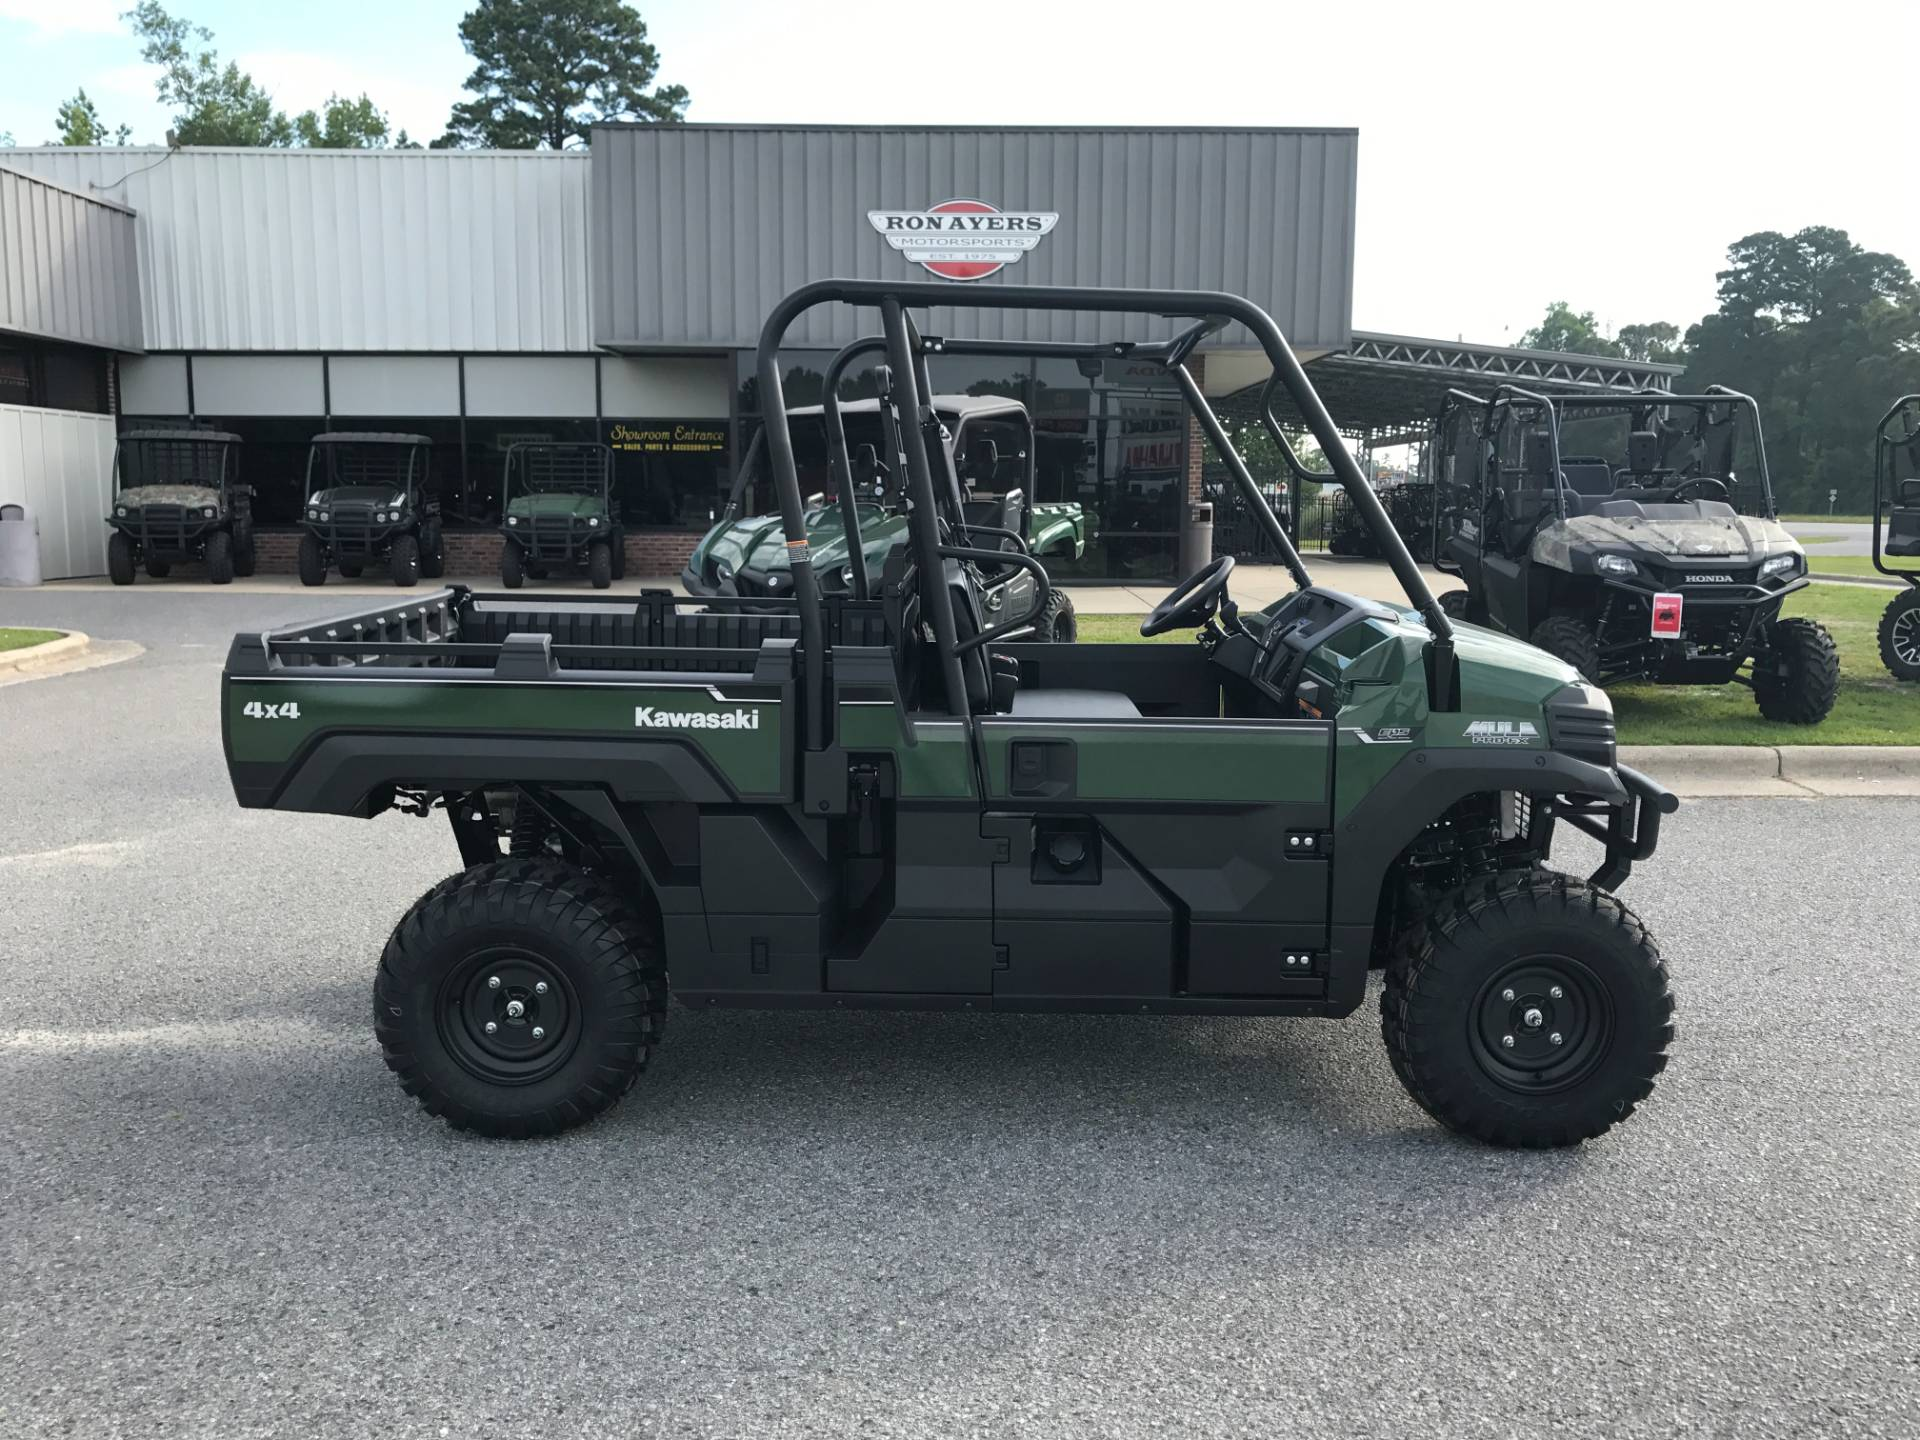 2018 Kawasaki Mule PRO-FX EPS in Greenville, North Carolina - Photo 1